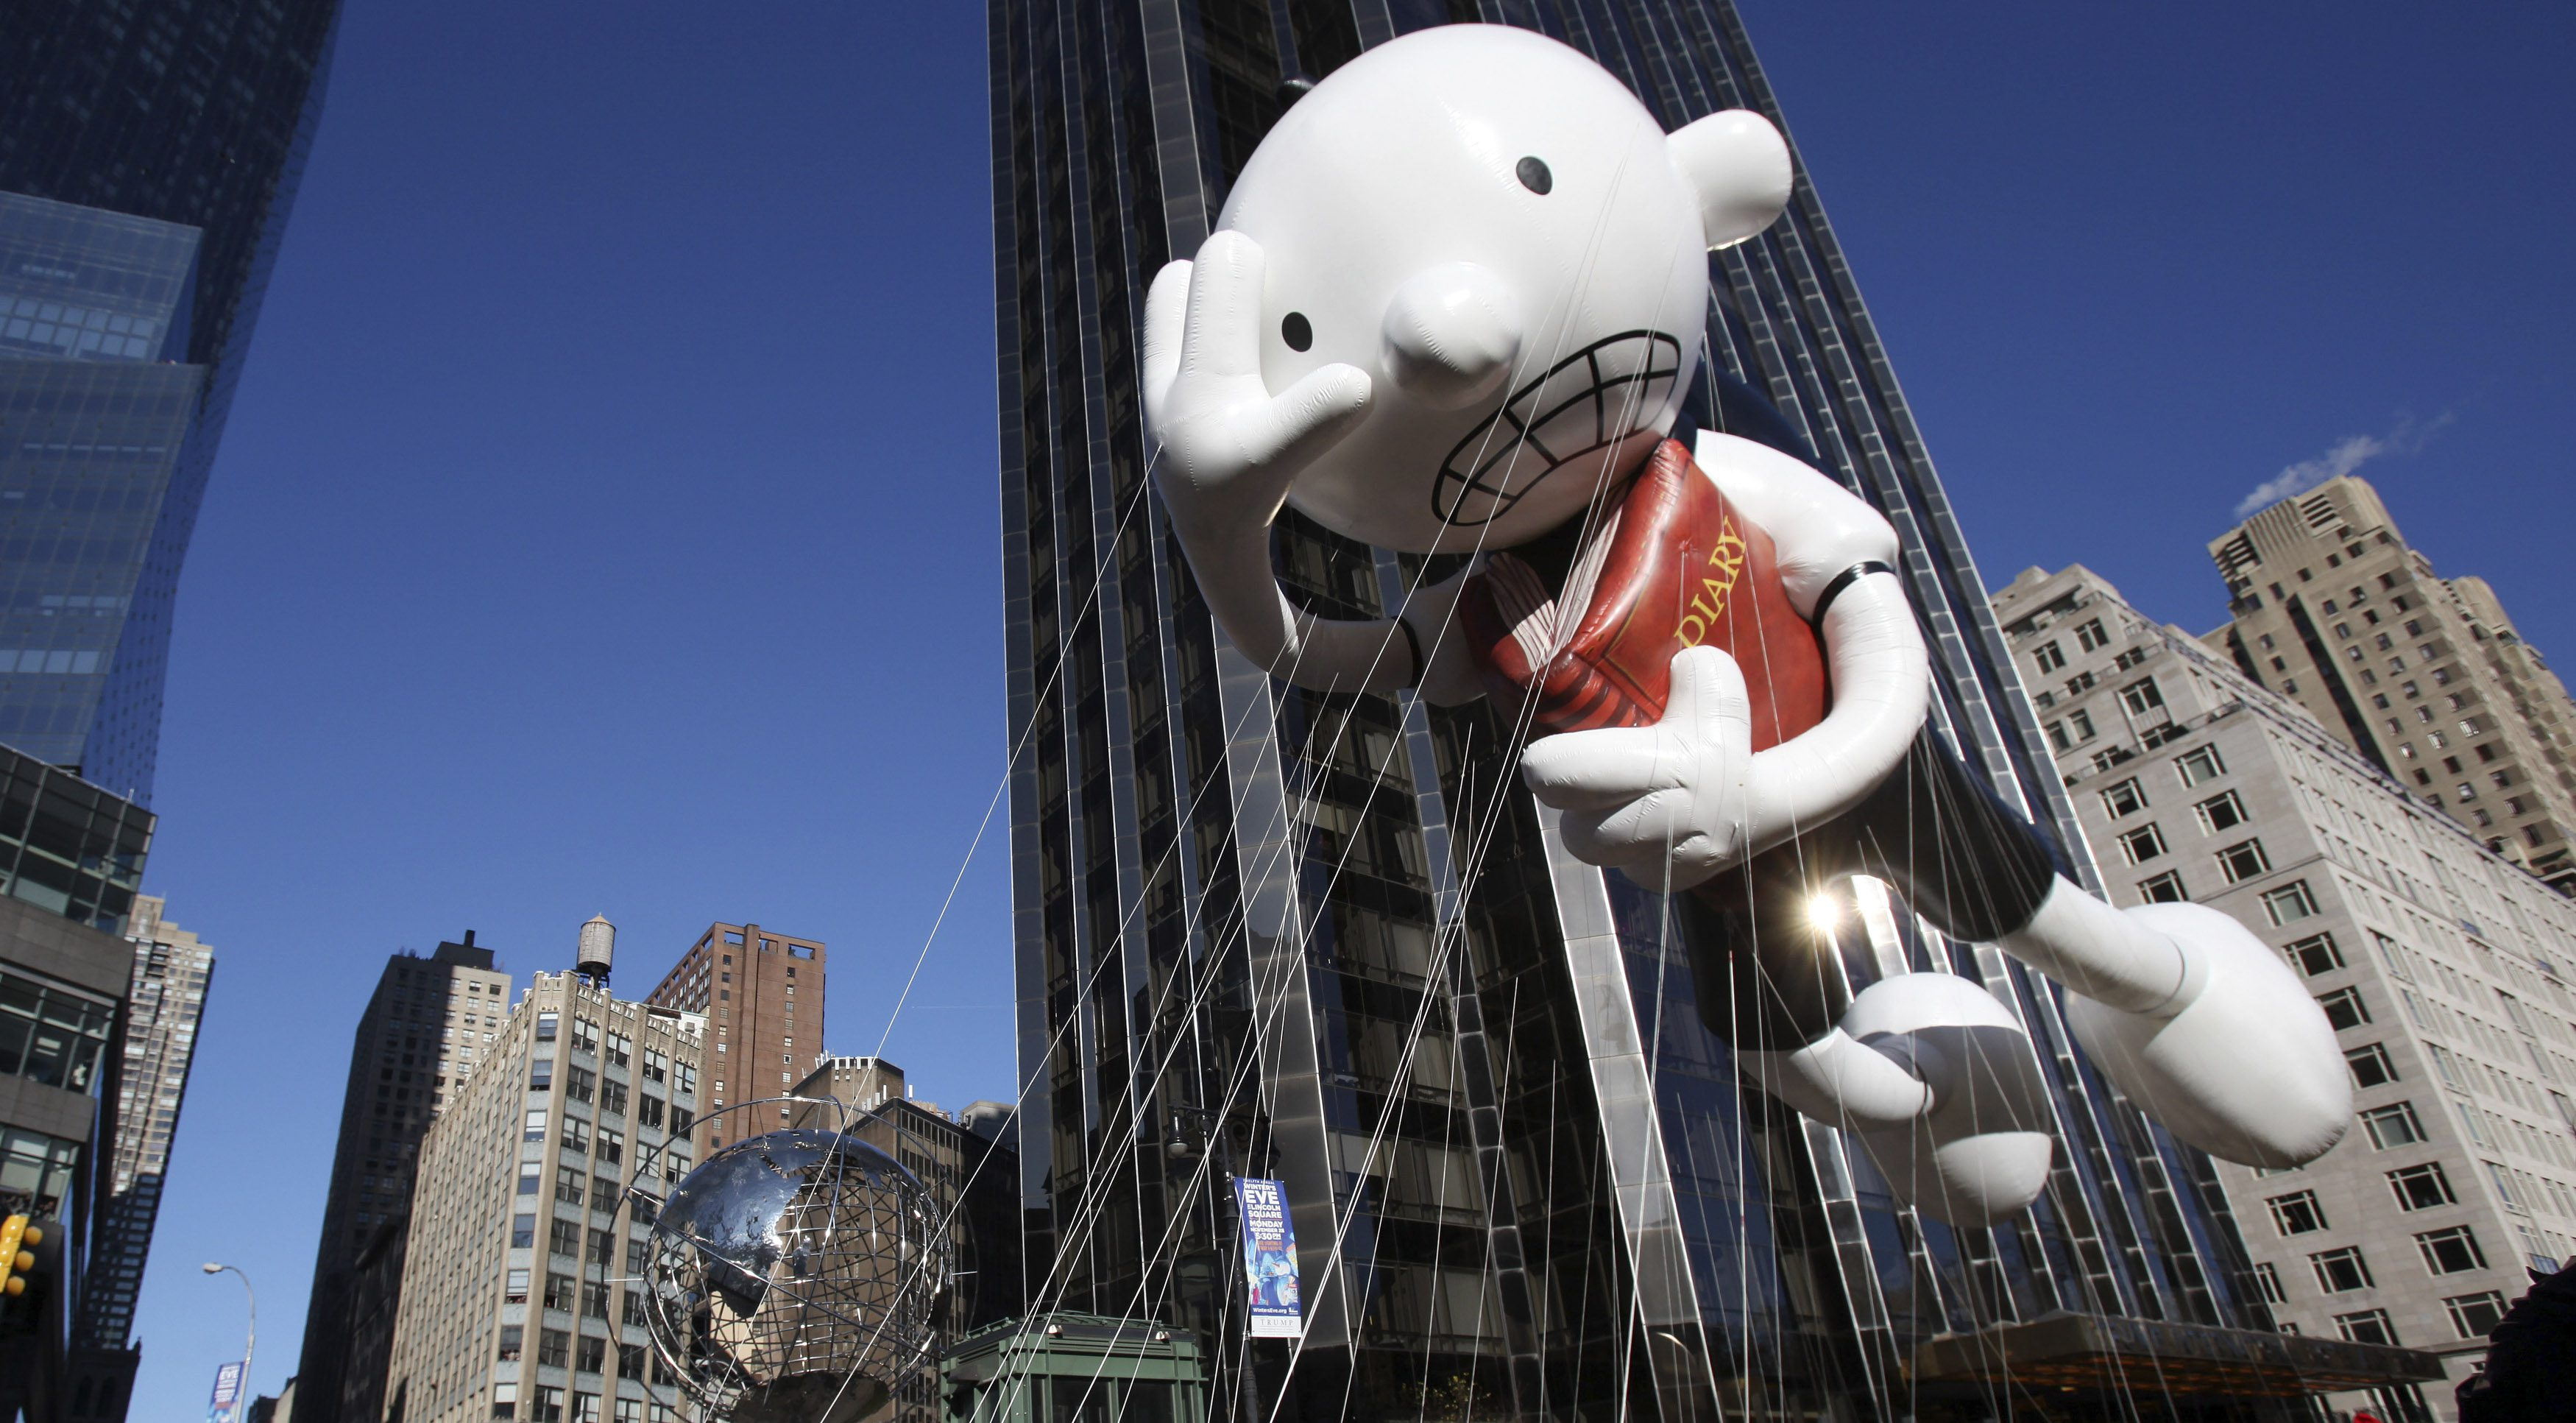 The Diary of a Wimpy Kid balloon floats around Columbus Circle during the 85th annual Macy's Thanksgiving day parade in New York November 24, 2011. REUTERS/Shannon Stapleton (UNITED STATES - Tags: ENTERTAINMENT SOCIETY) - RTR2UF6E